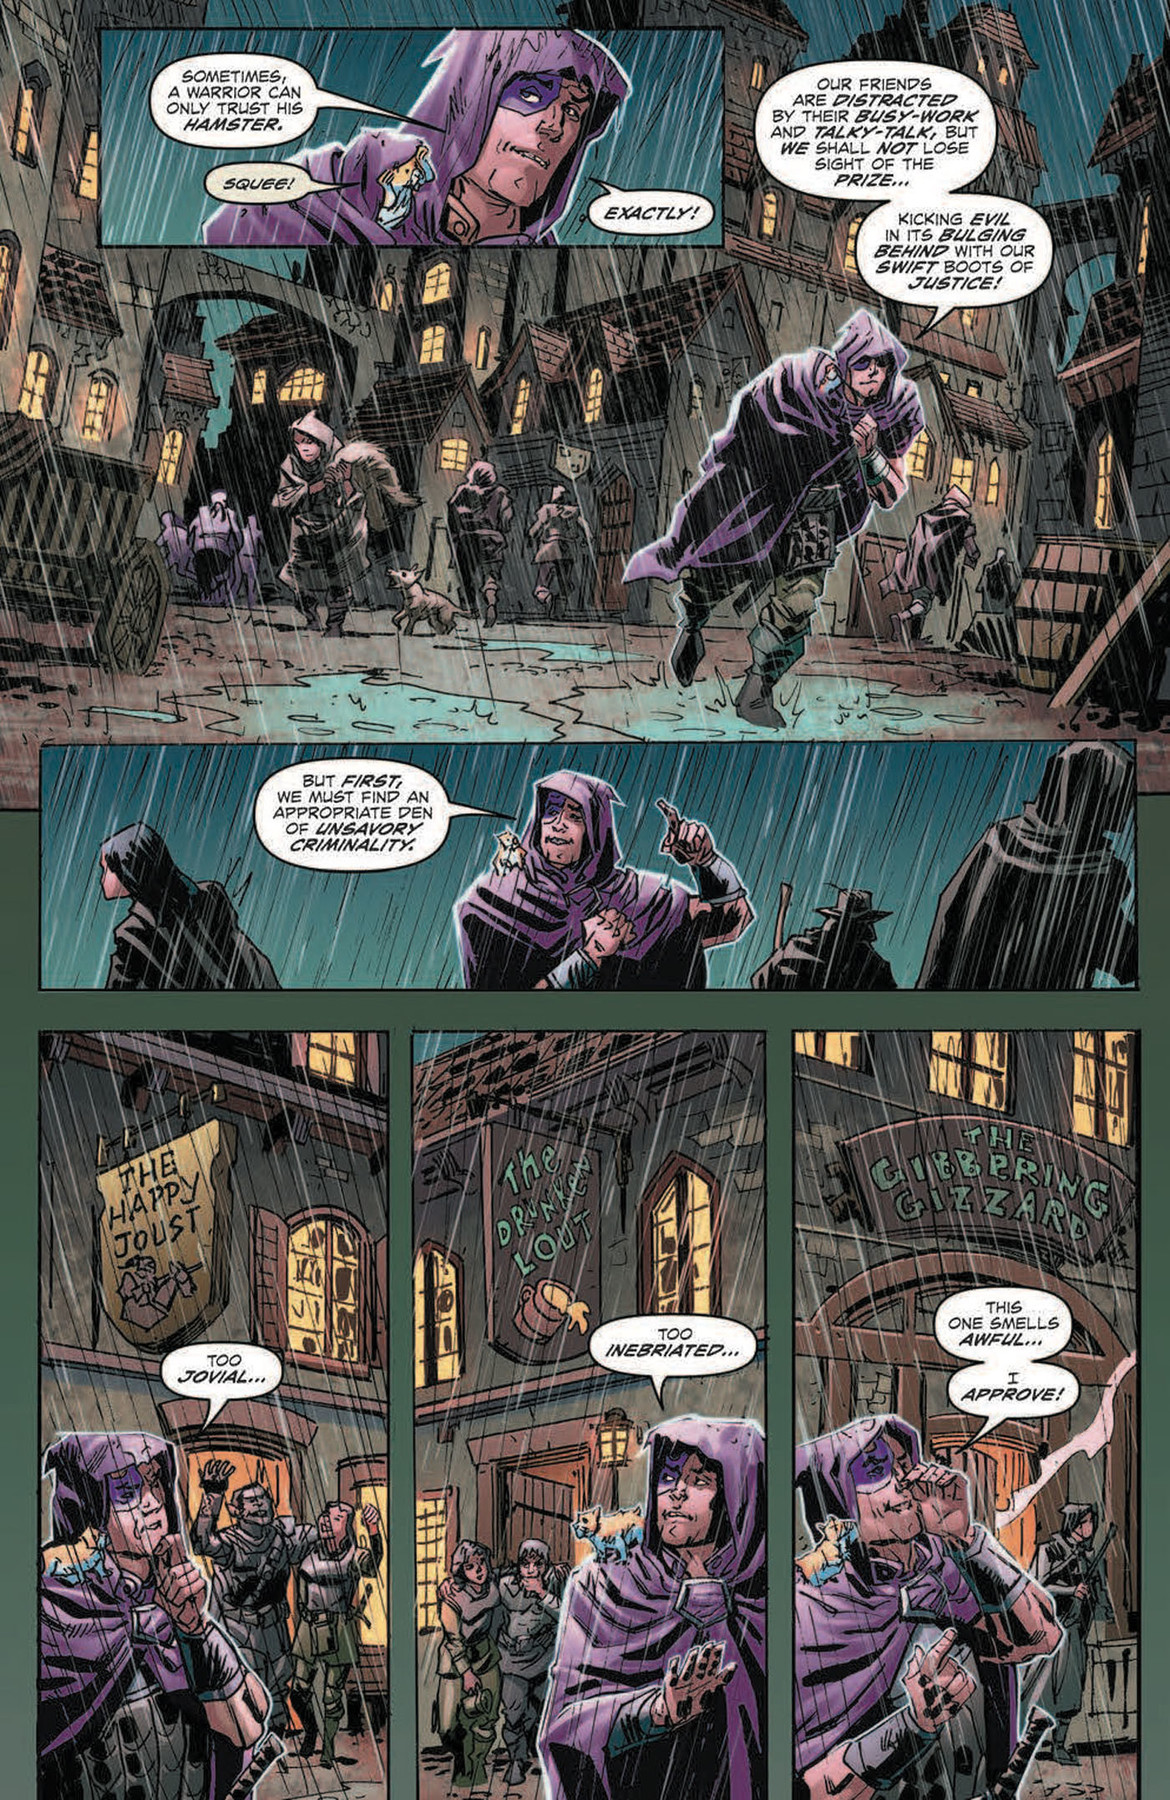 dungeons_and_dragons_evil_at_baldurs_gate_page_5.jpg